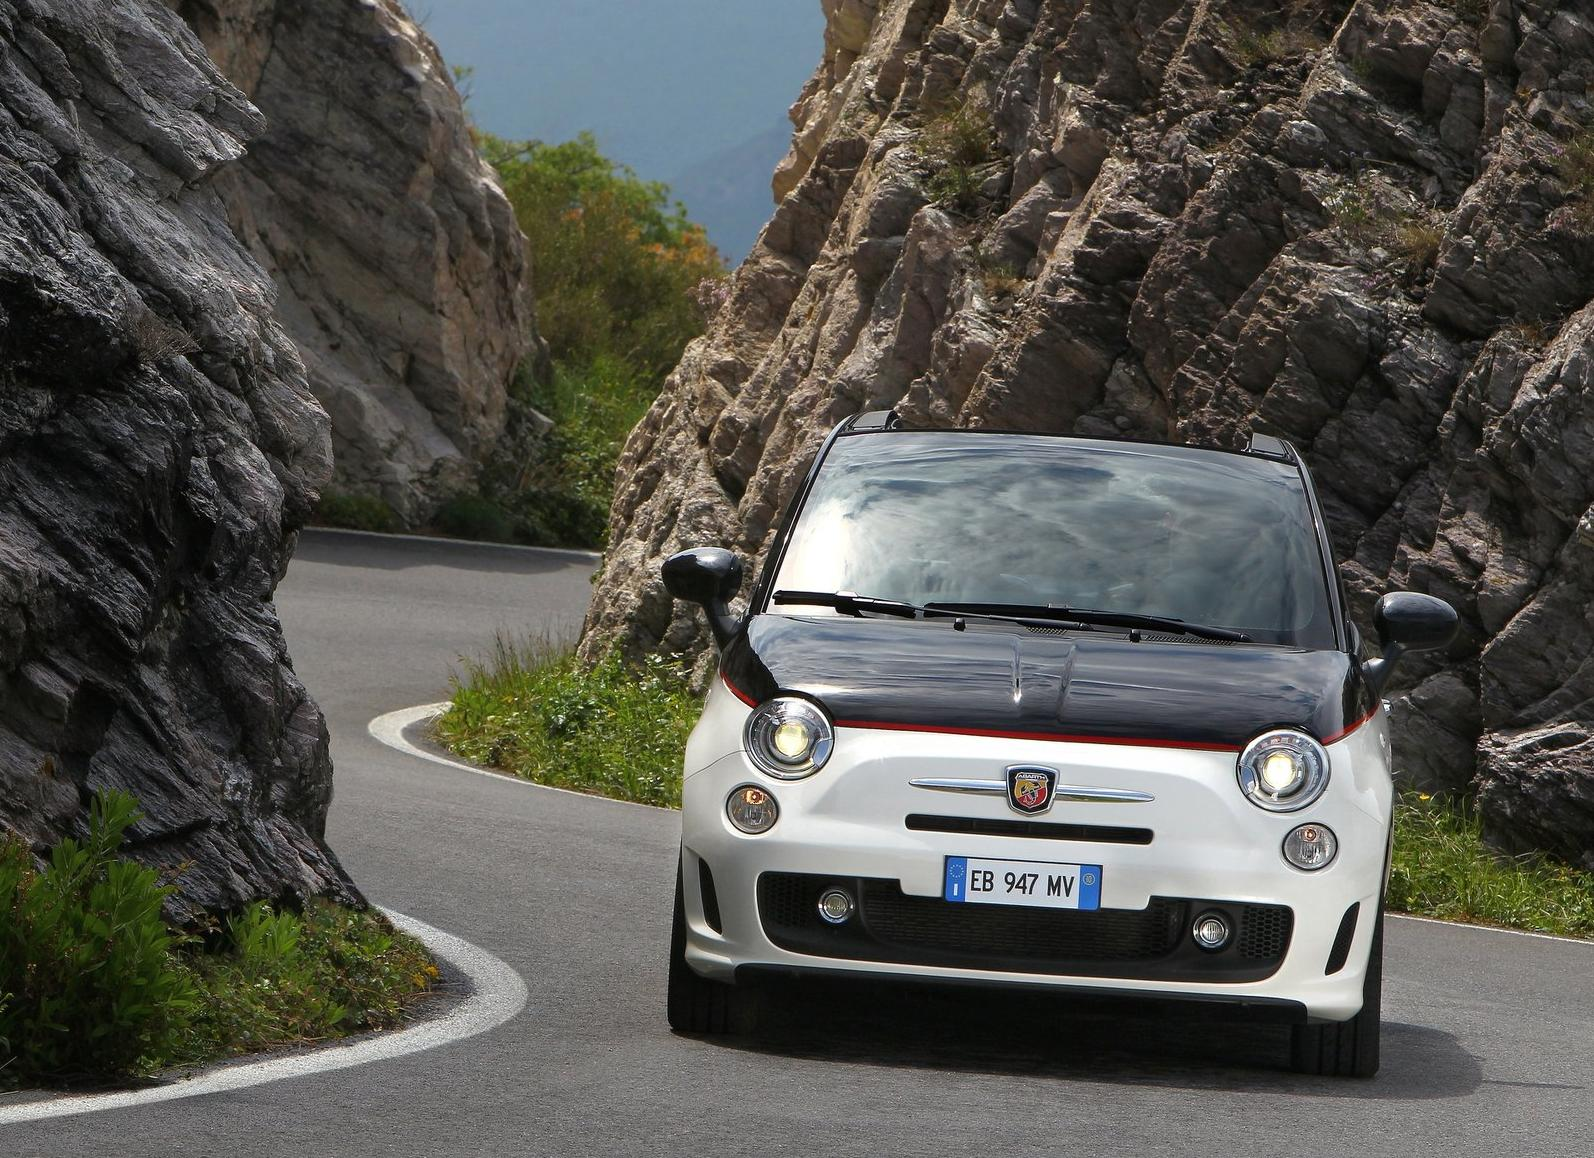 The 500C Abarth can complete a